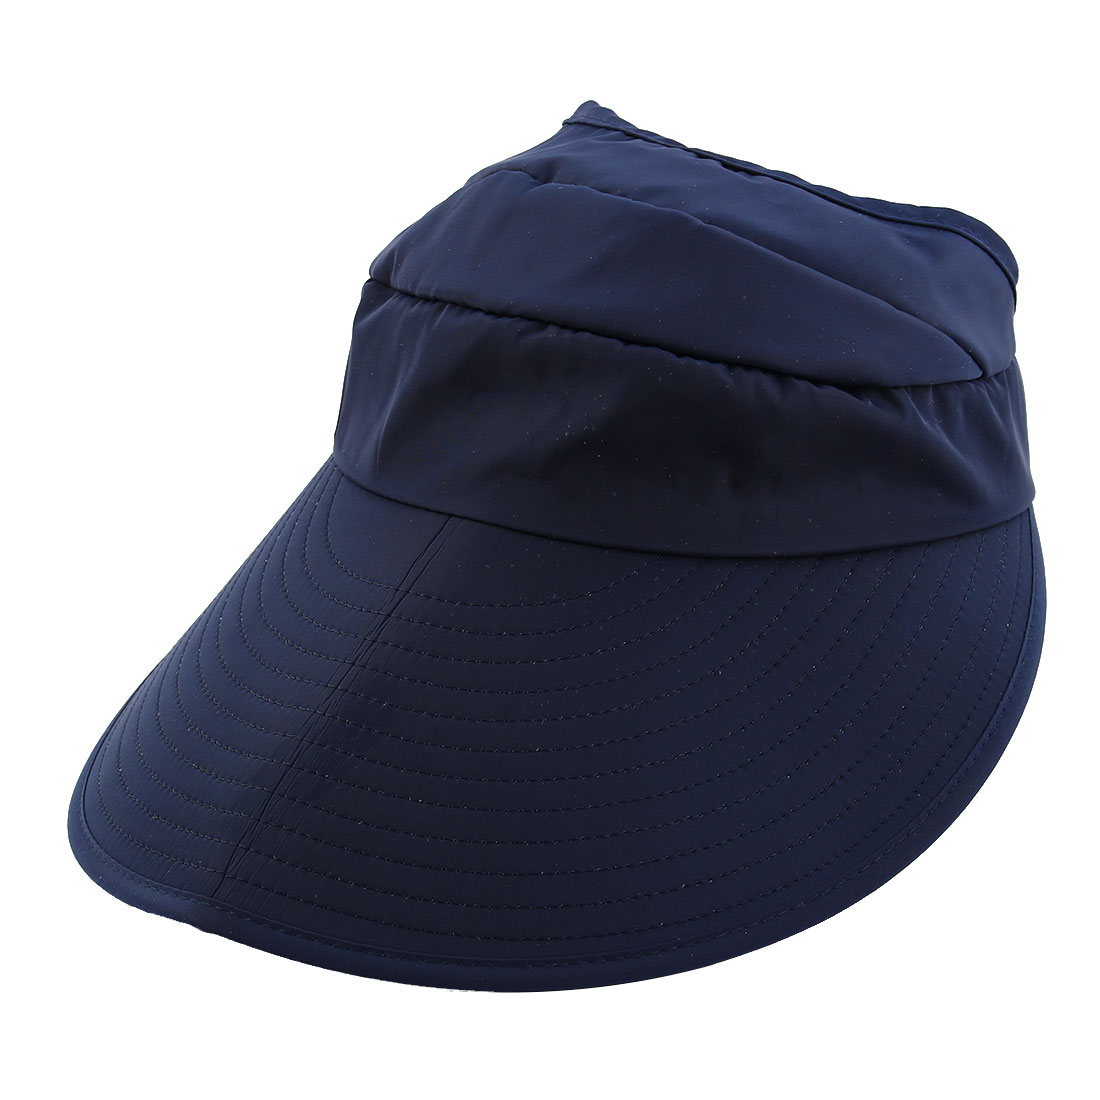 Lady Polyester Leaf Printed Summer Travel Holiday Beach Floppy Cap Sun Visor Hat Navy Blue